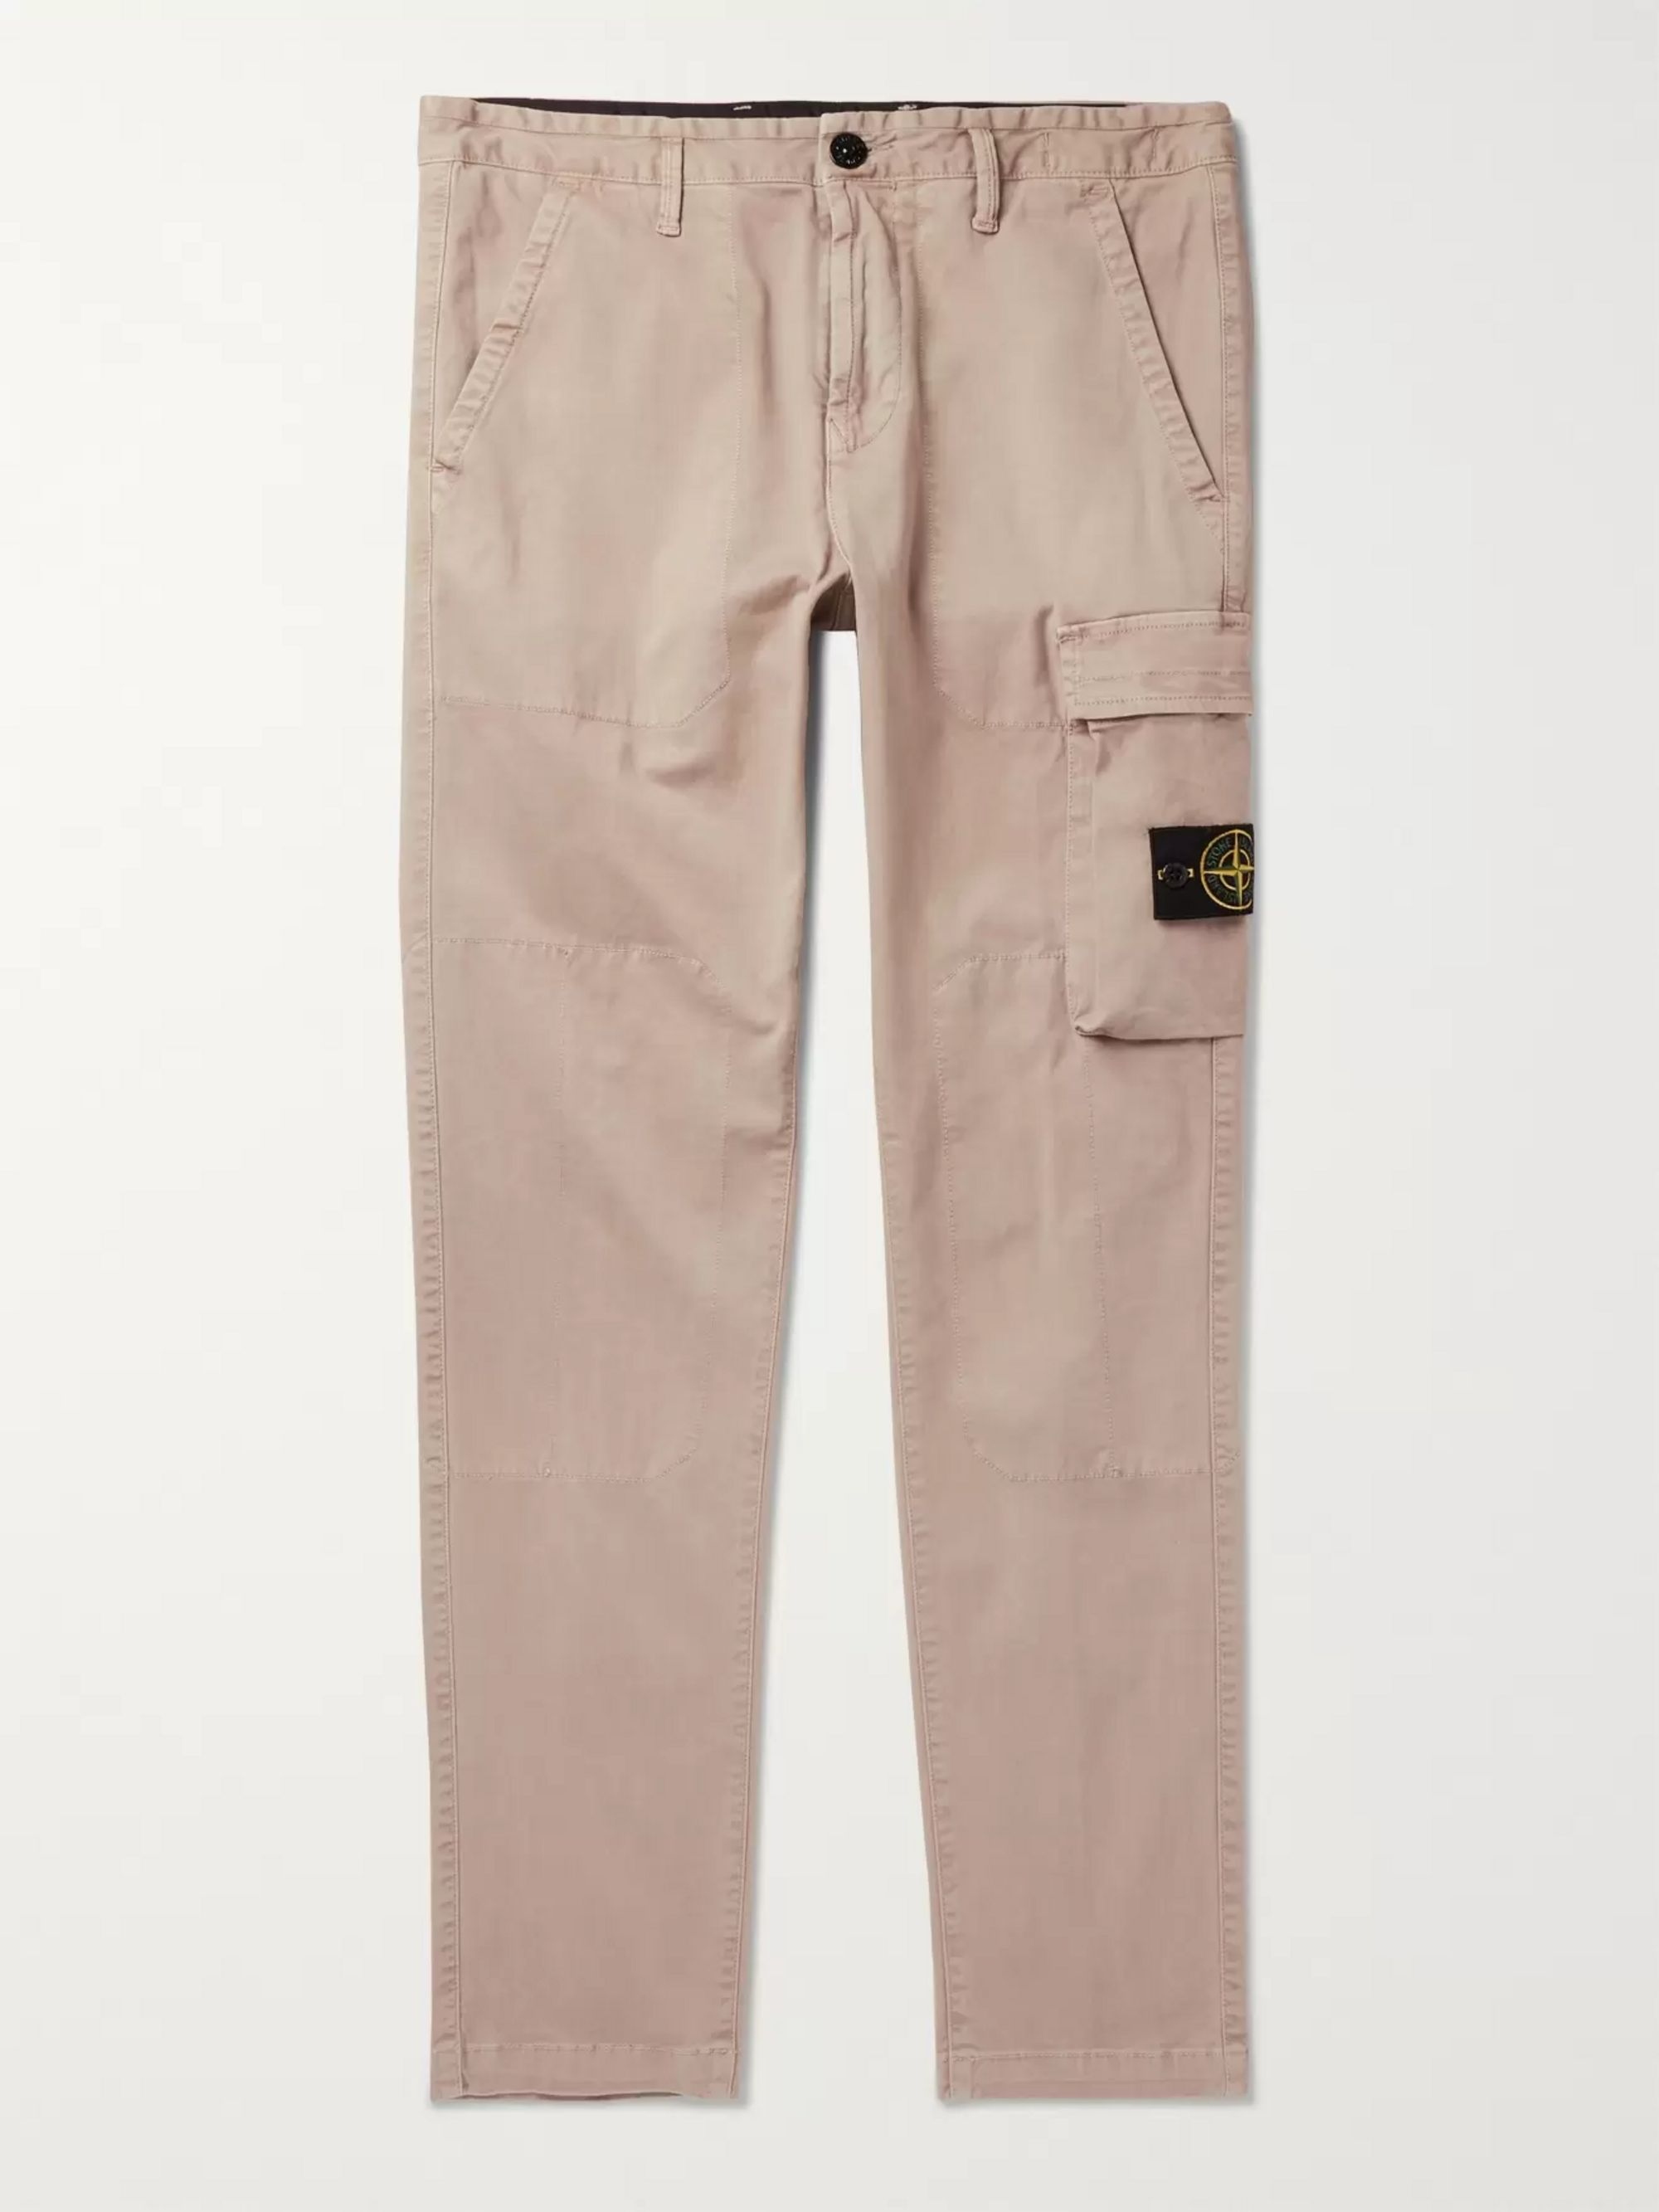 Stone Island Slim-Fit Tapered Cotton-Blend Cargo Trousers